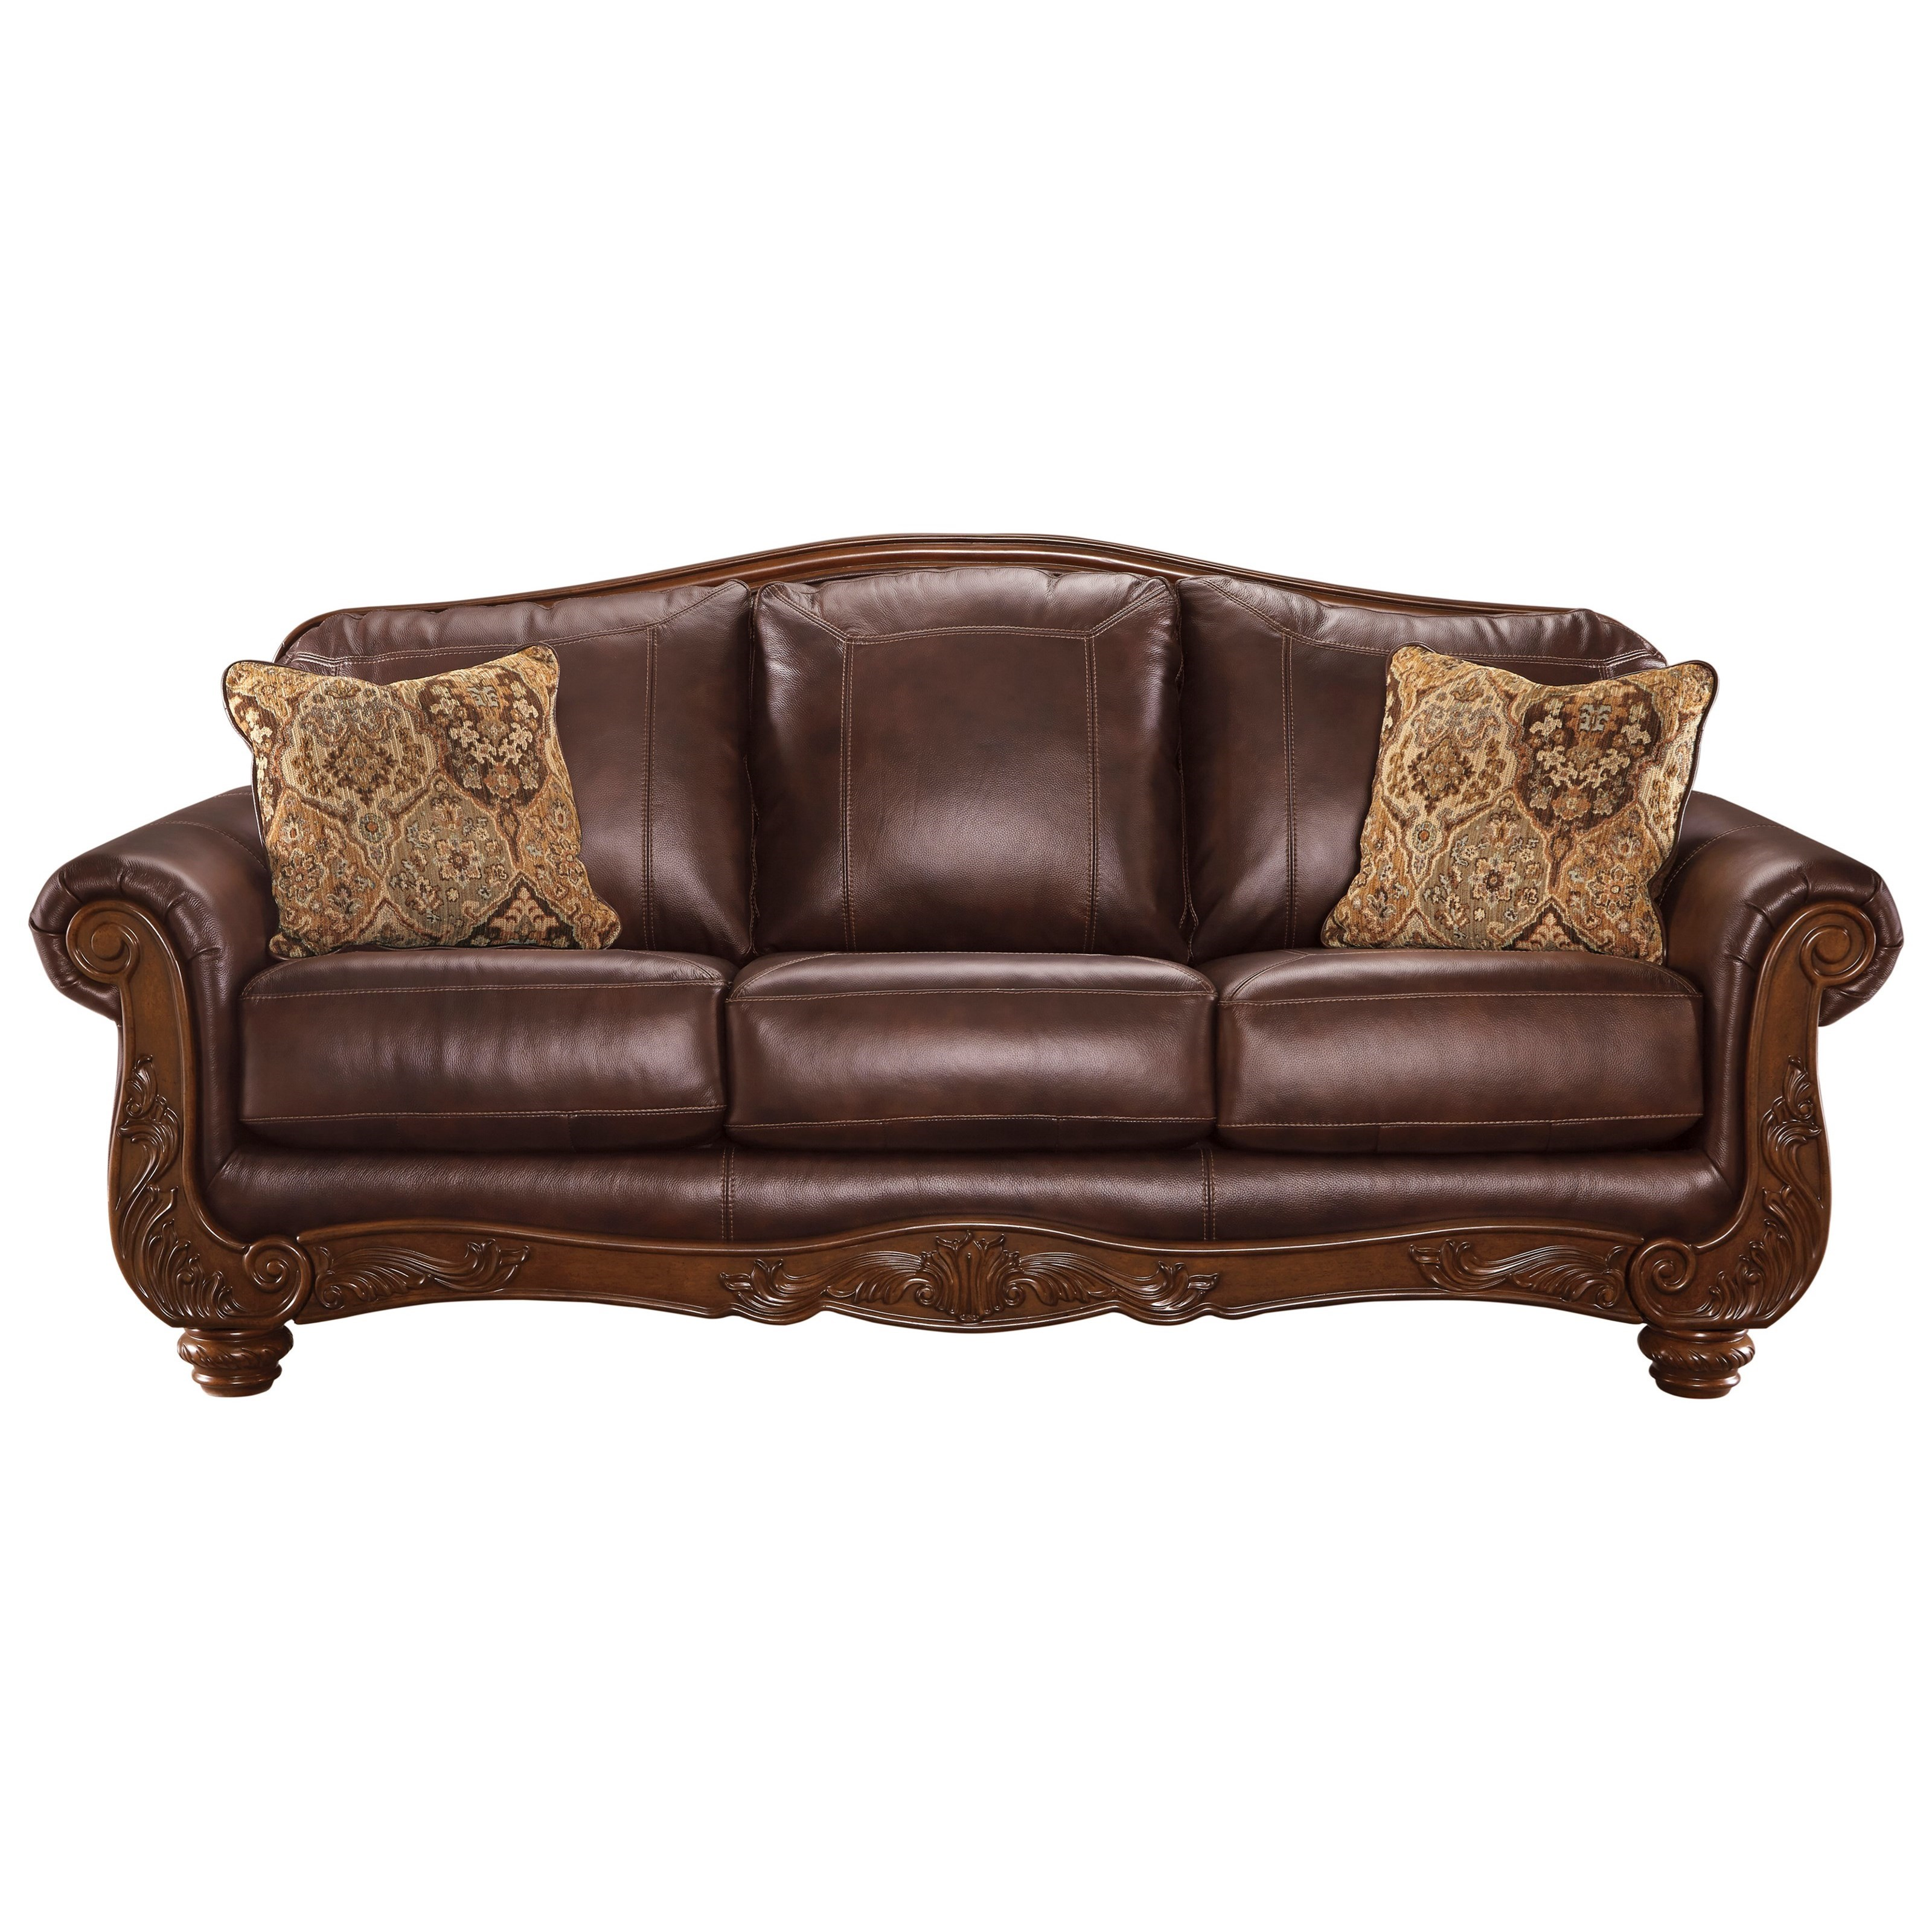 Ashley signature design mellwood 6460538 traditional for Traditional leather sofas furniture